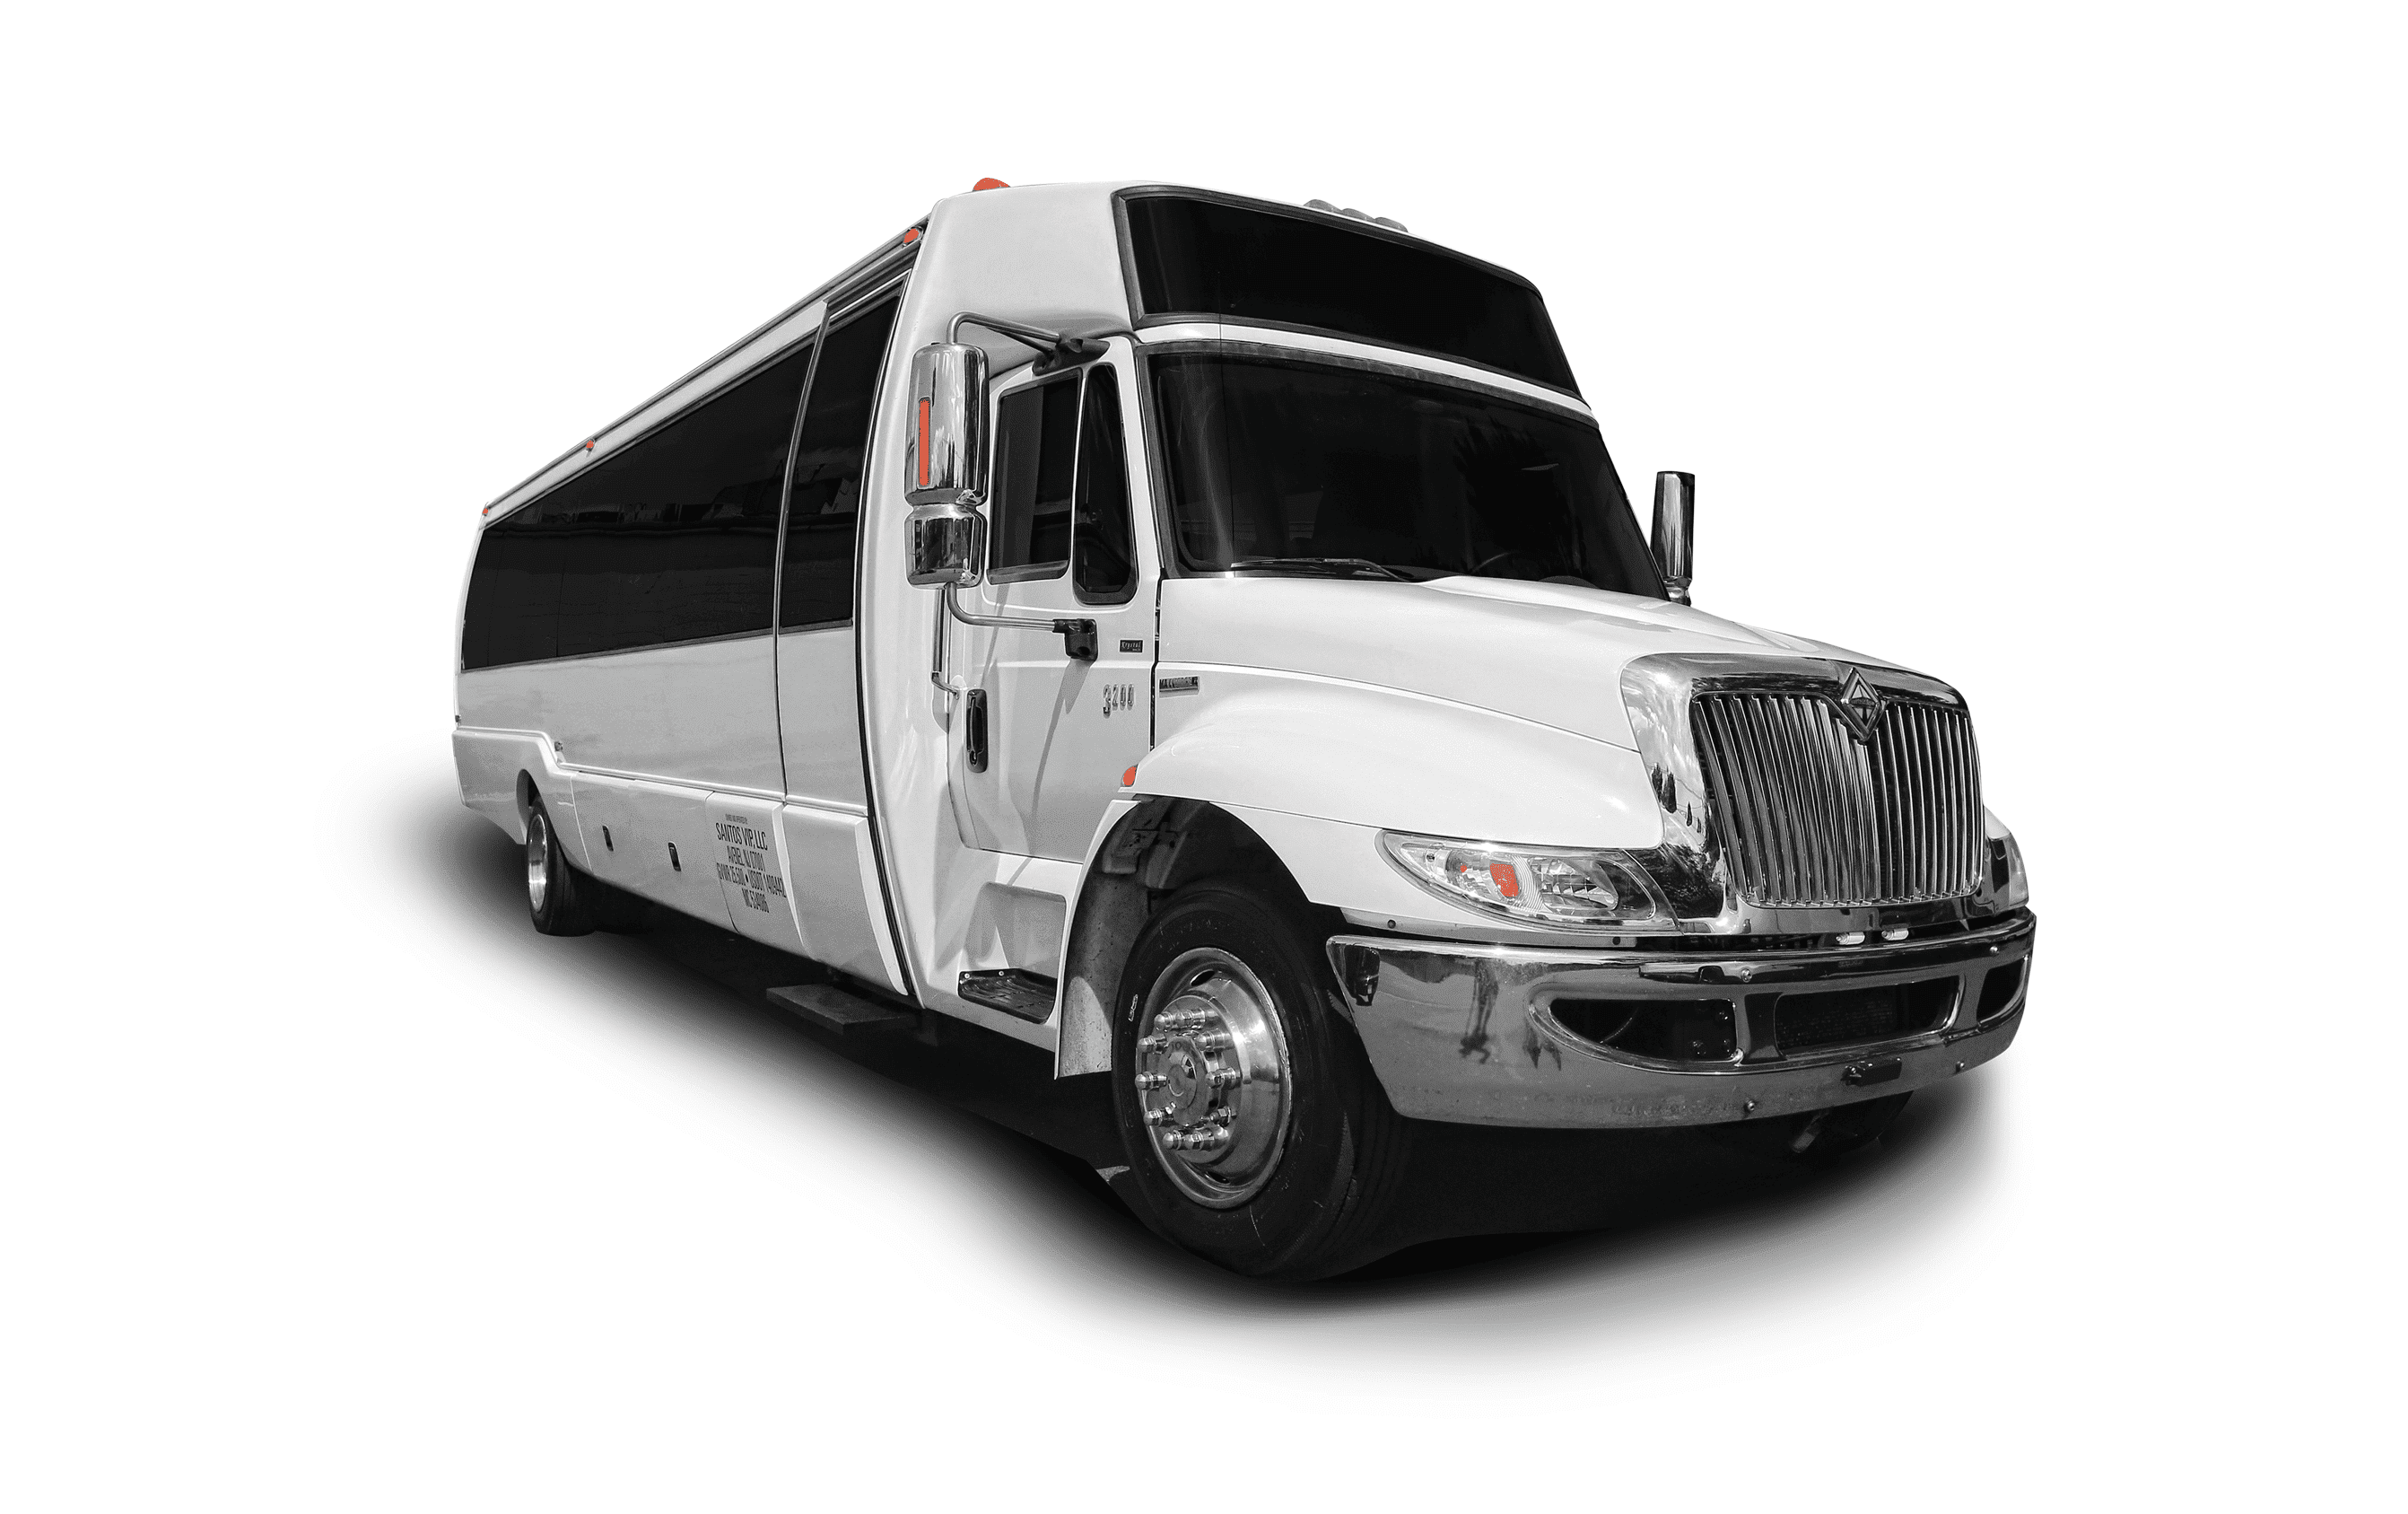 28 passenger VIP Limo Coach Party Bus rental for sporting events in NJ - NY